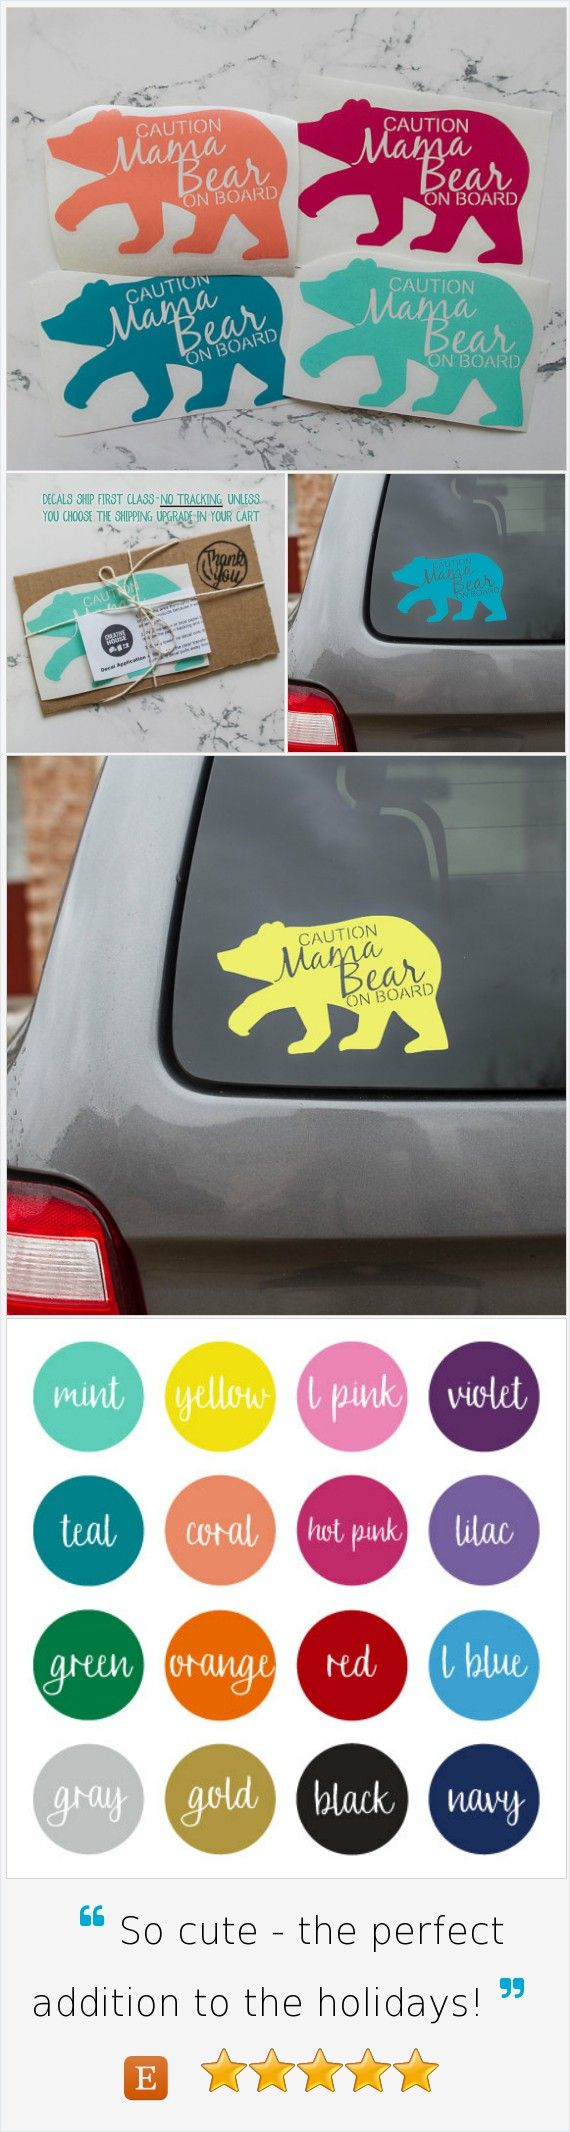 The coloring book vinyl - Car Decal Caution Mama Bear On Board Car Decal Color Vinyl Sticker Baby